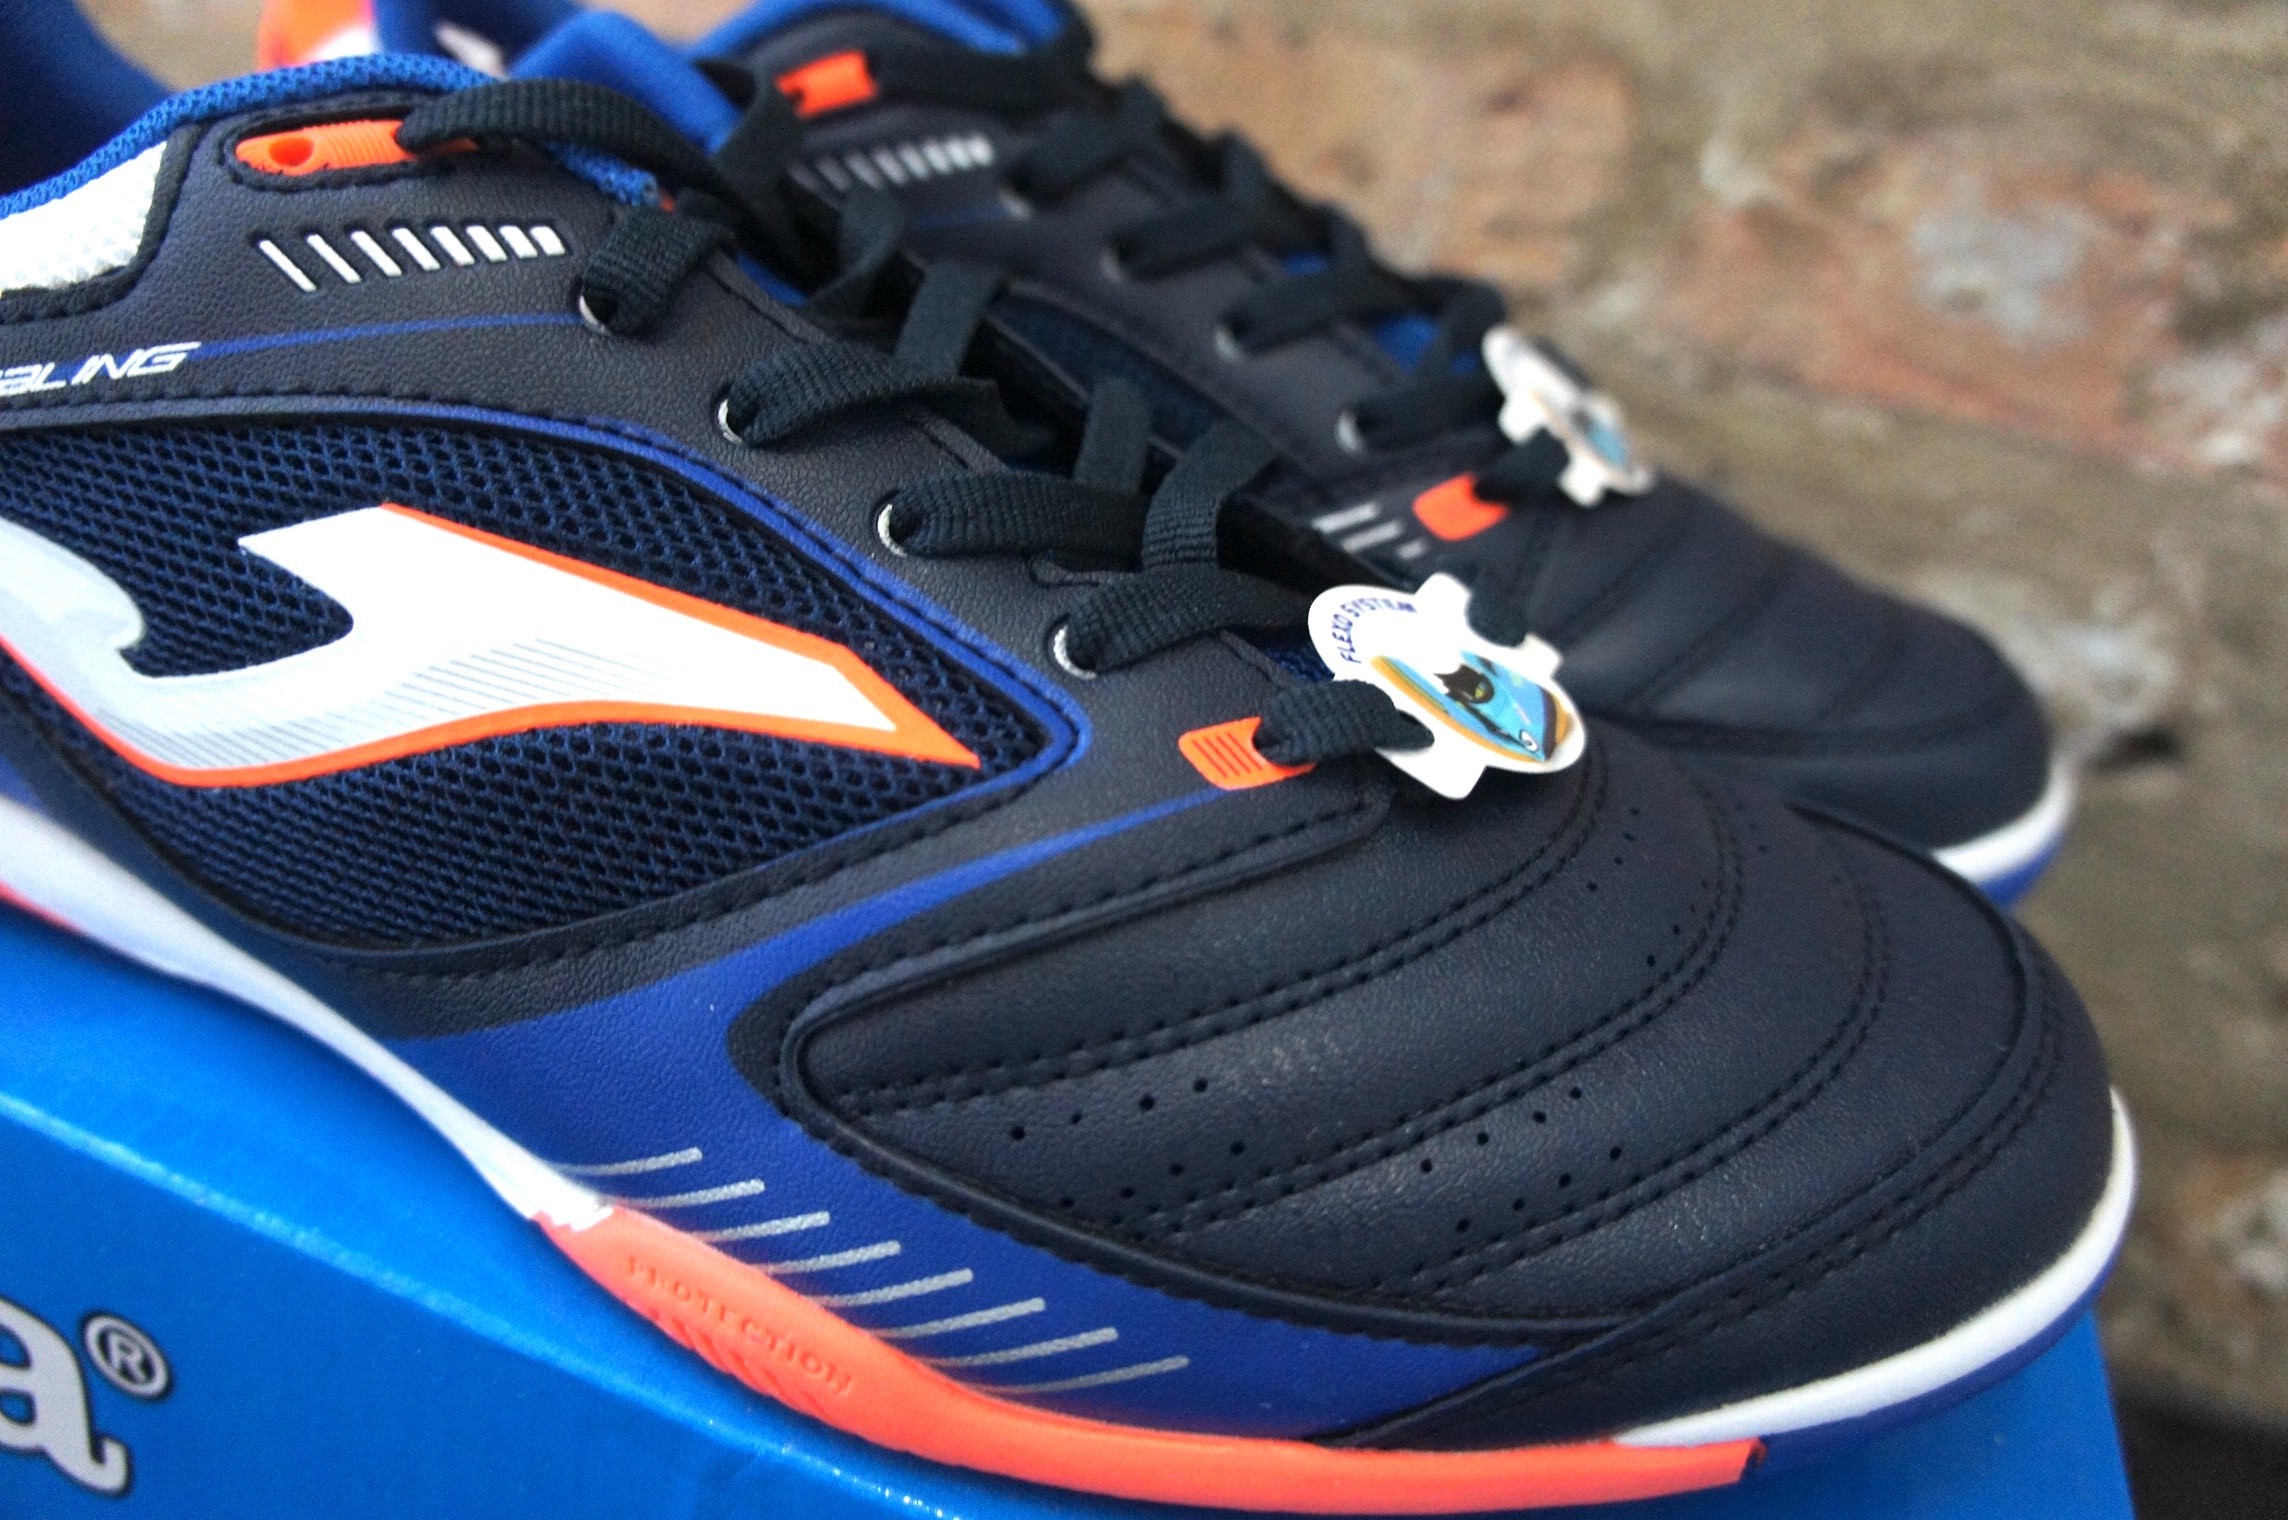 Joma Dribling Indoor Soccer Shoes Review